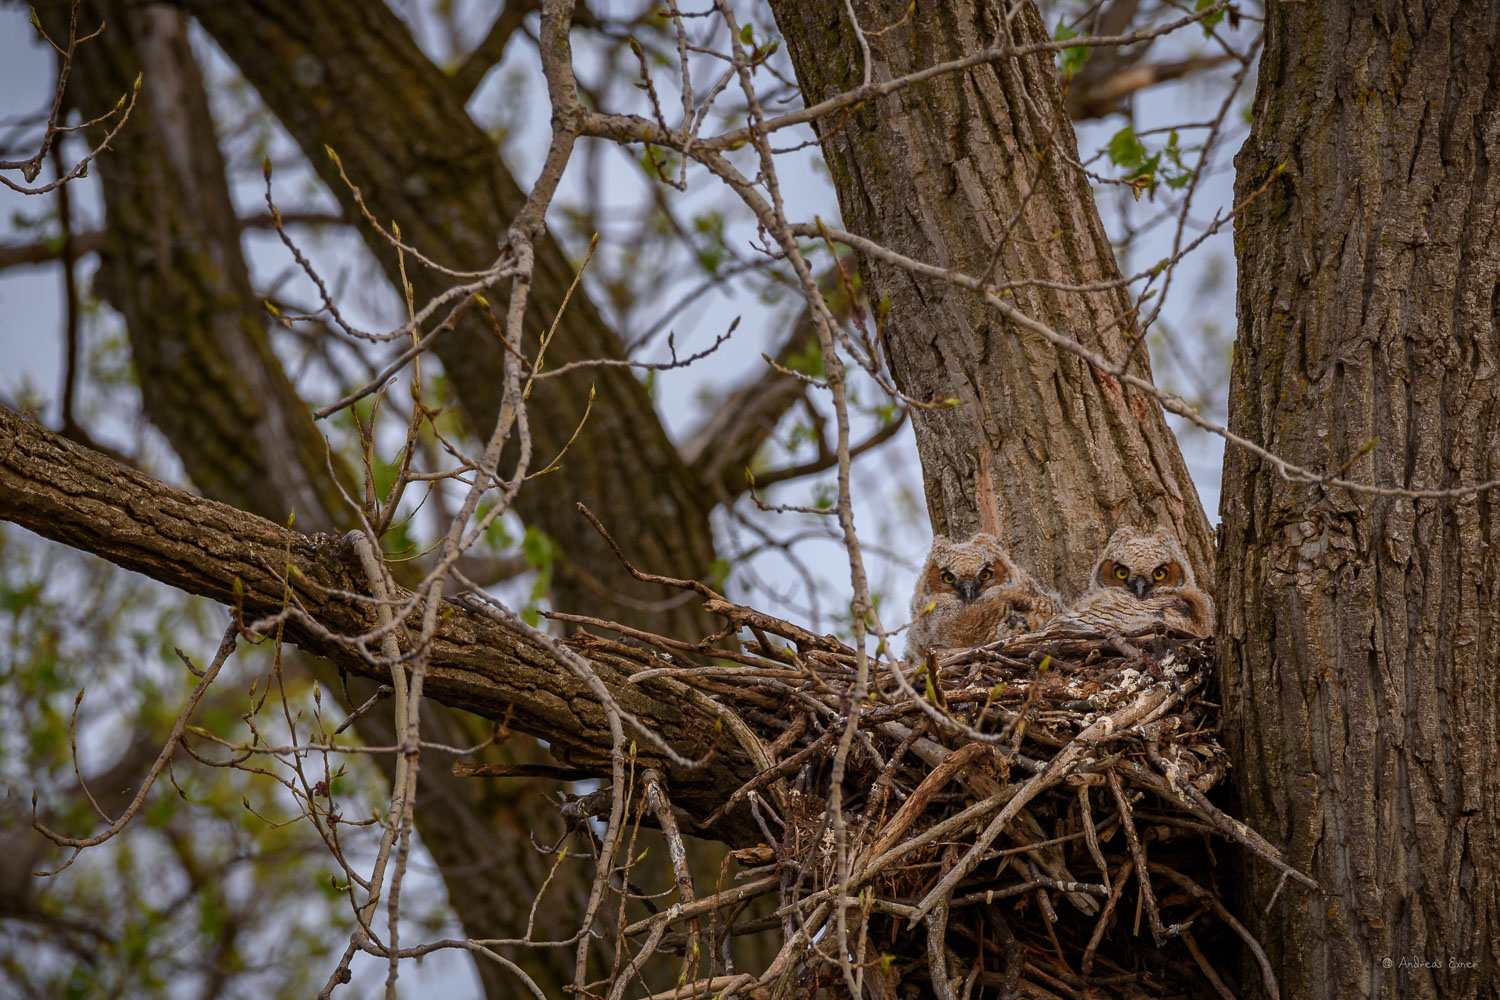 GREAT HORNED OWL, JUVENILES